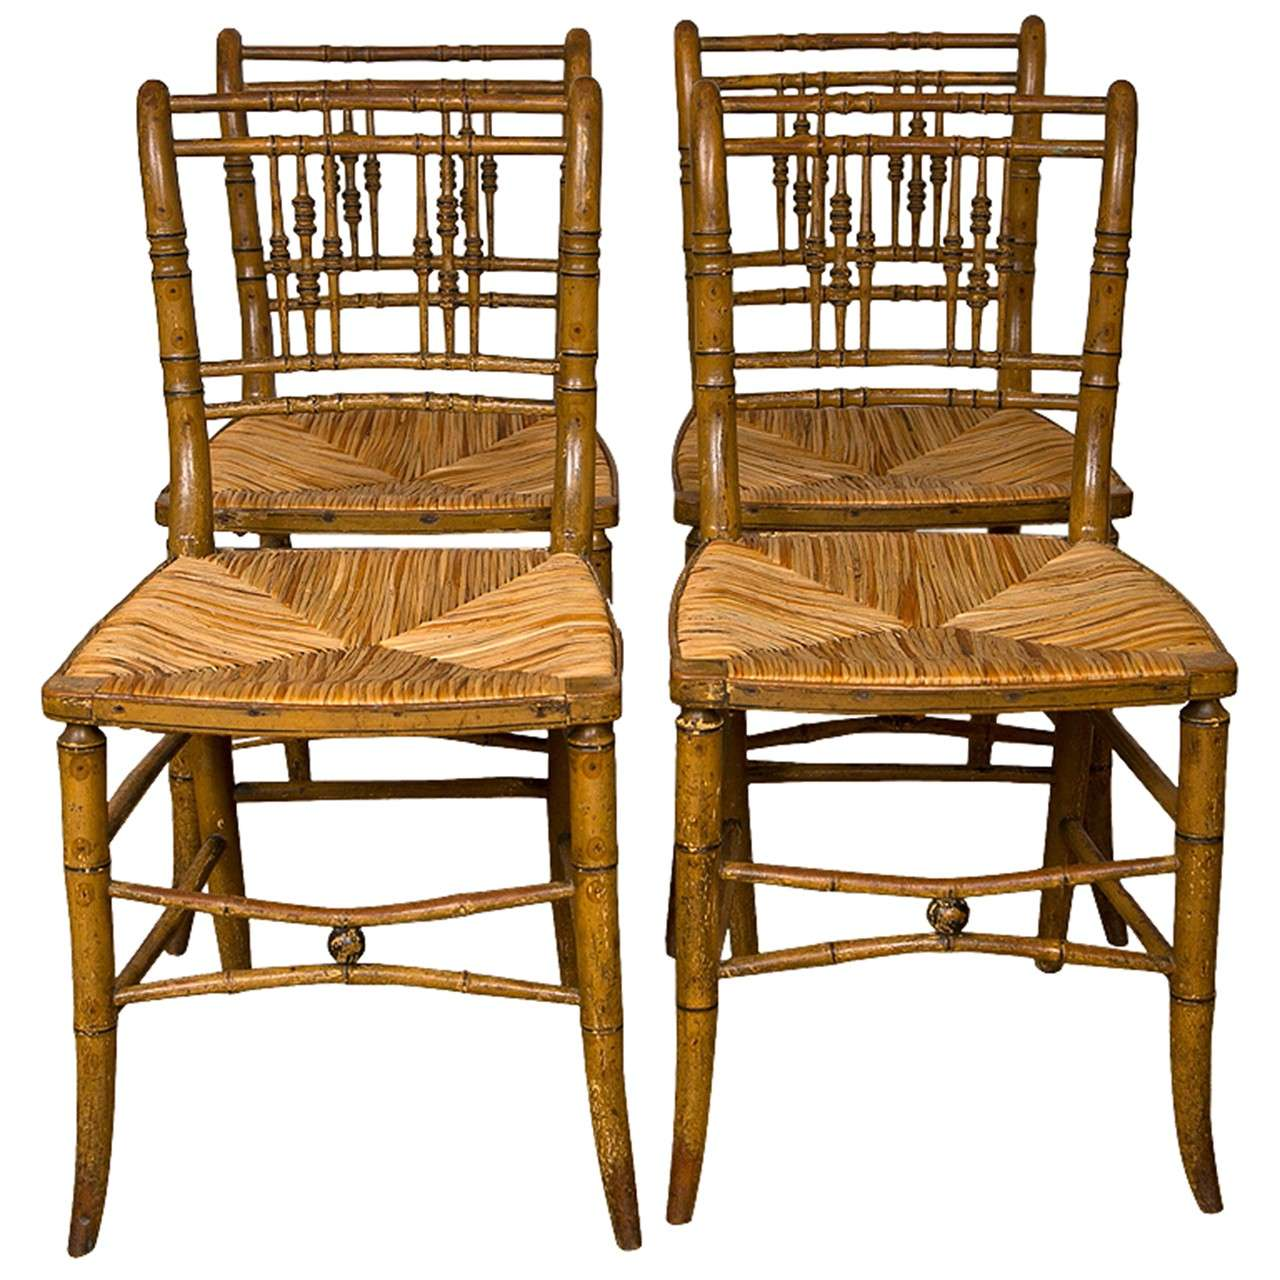 Bamboo Dining Room Chairs: English Faux Bamboo Dining Chairs At 1stdibs